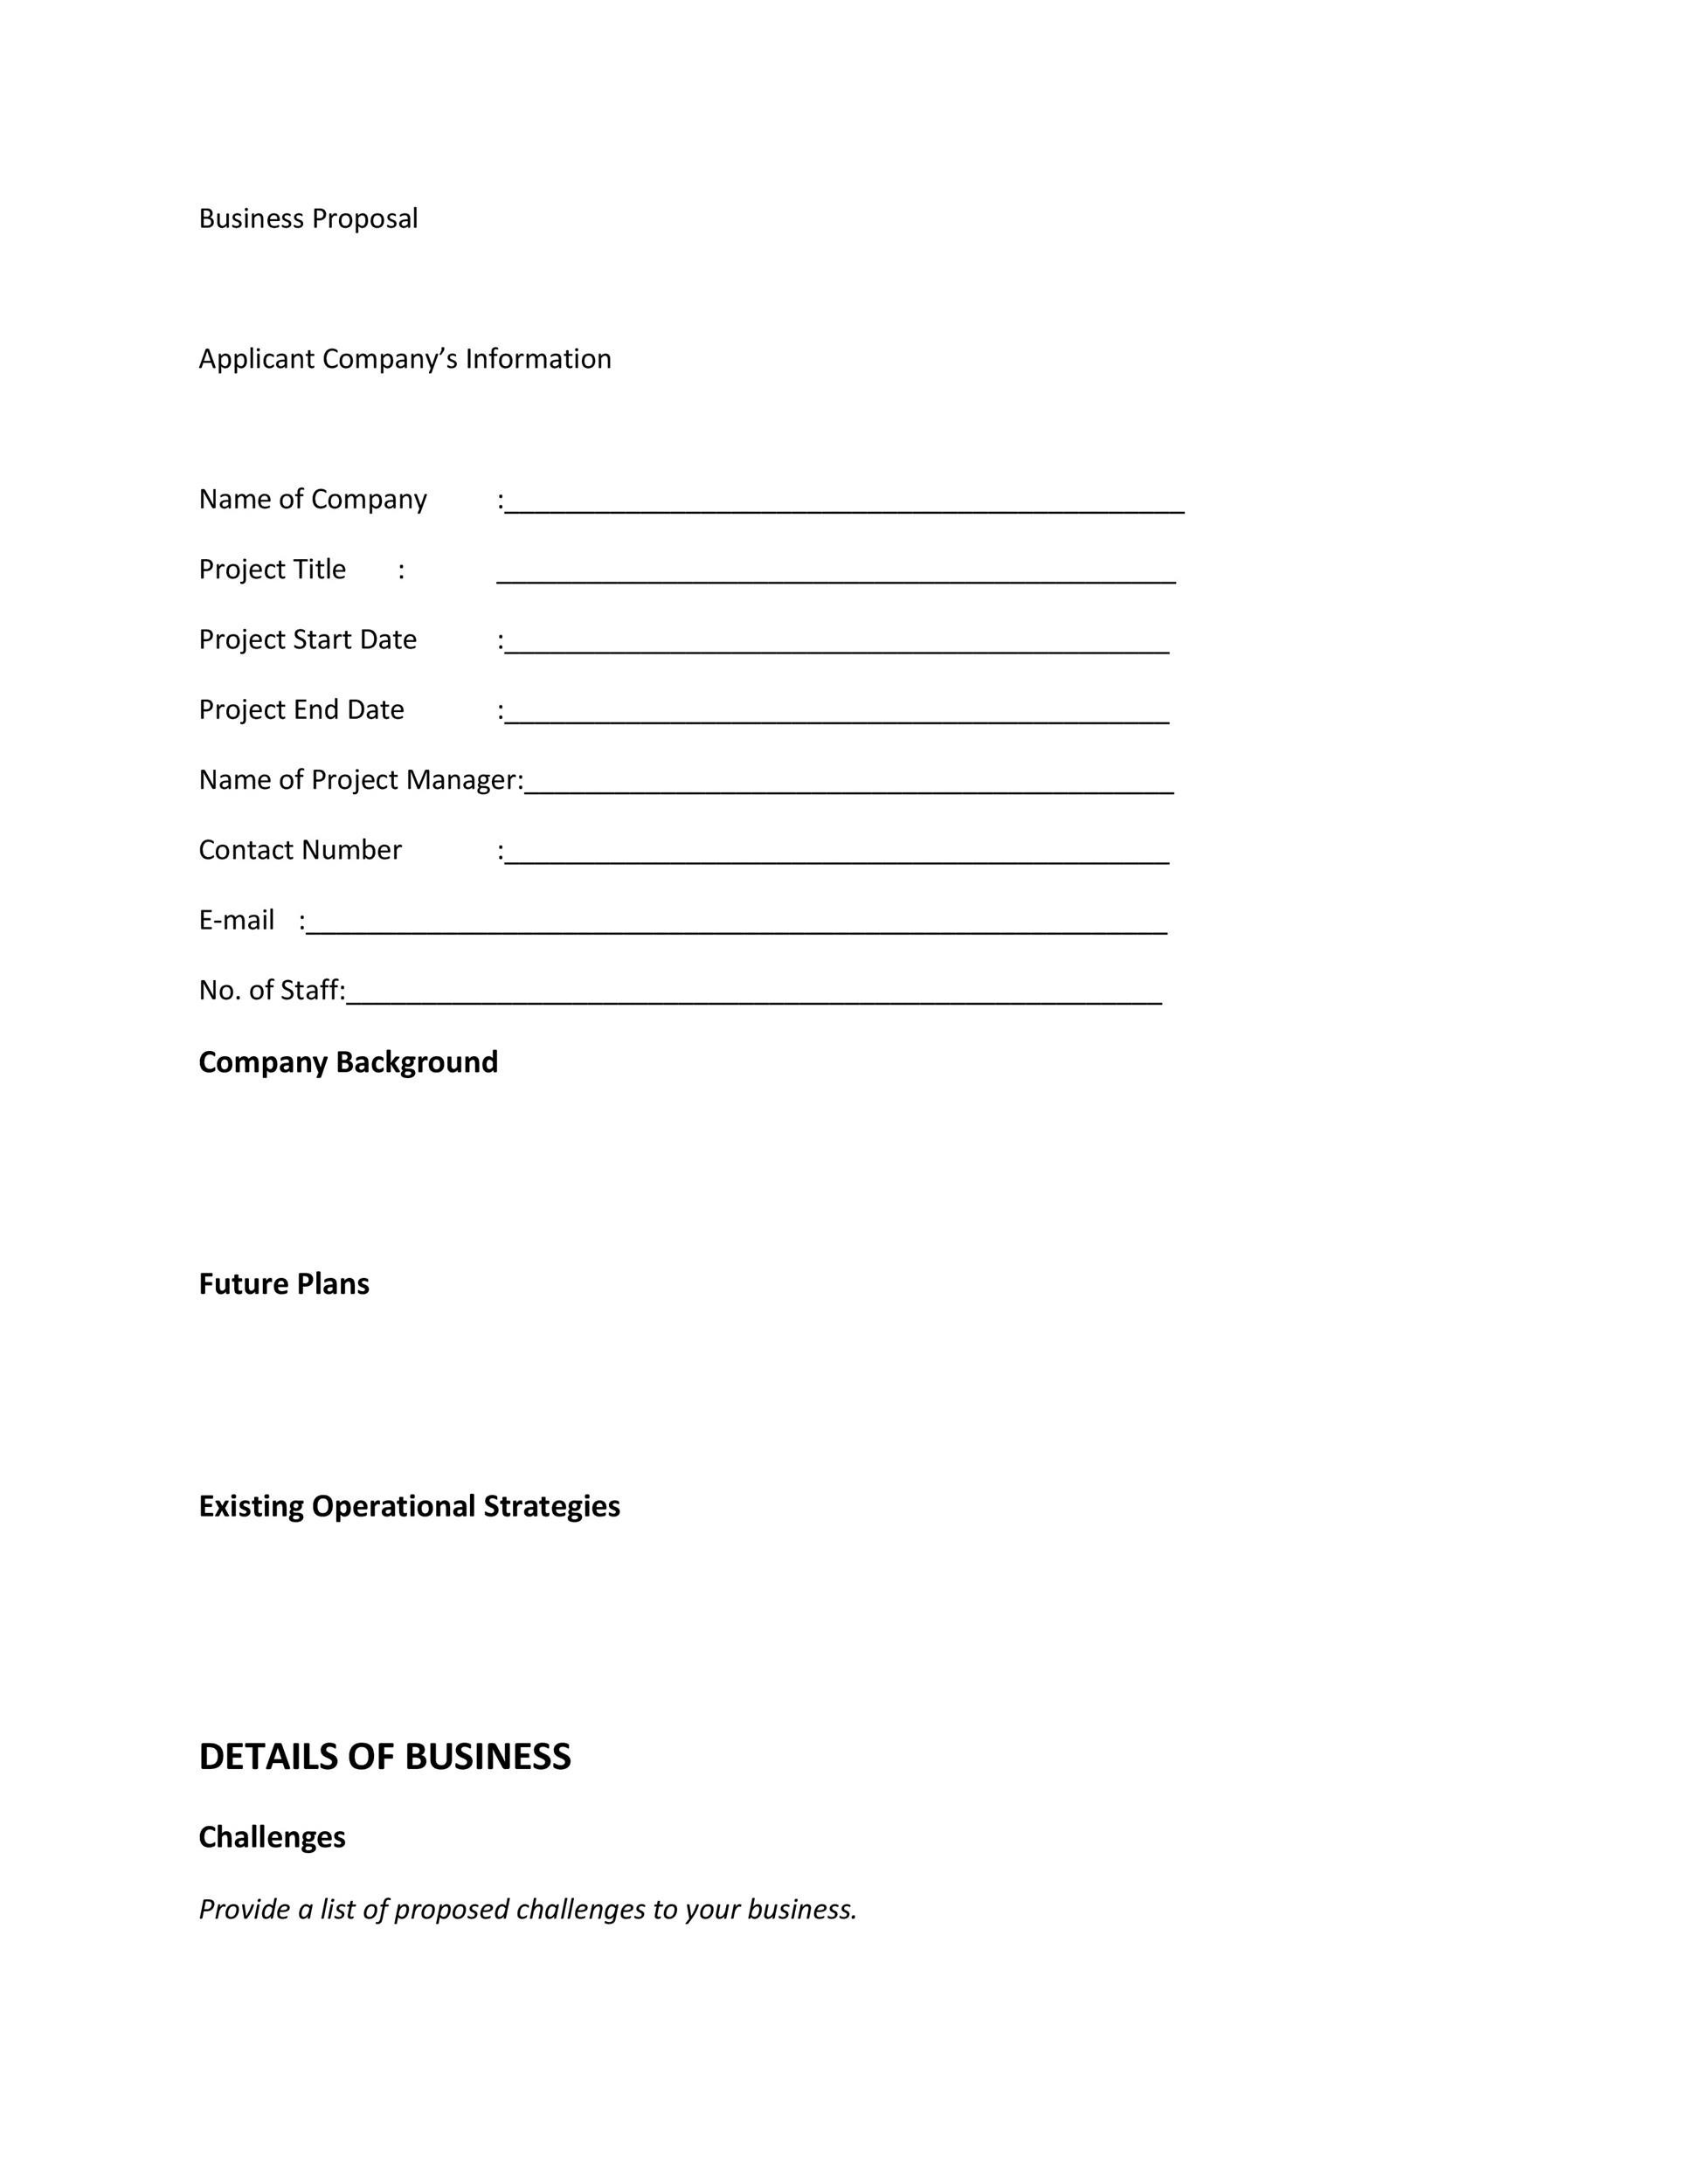 Business proposal Template 33